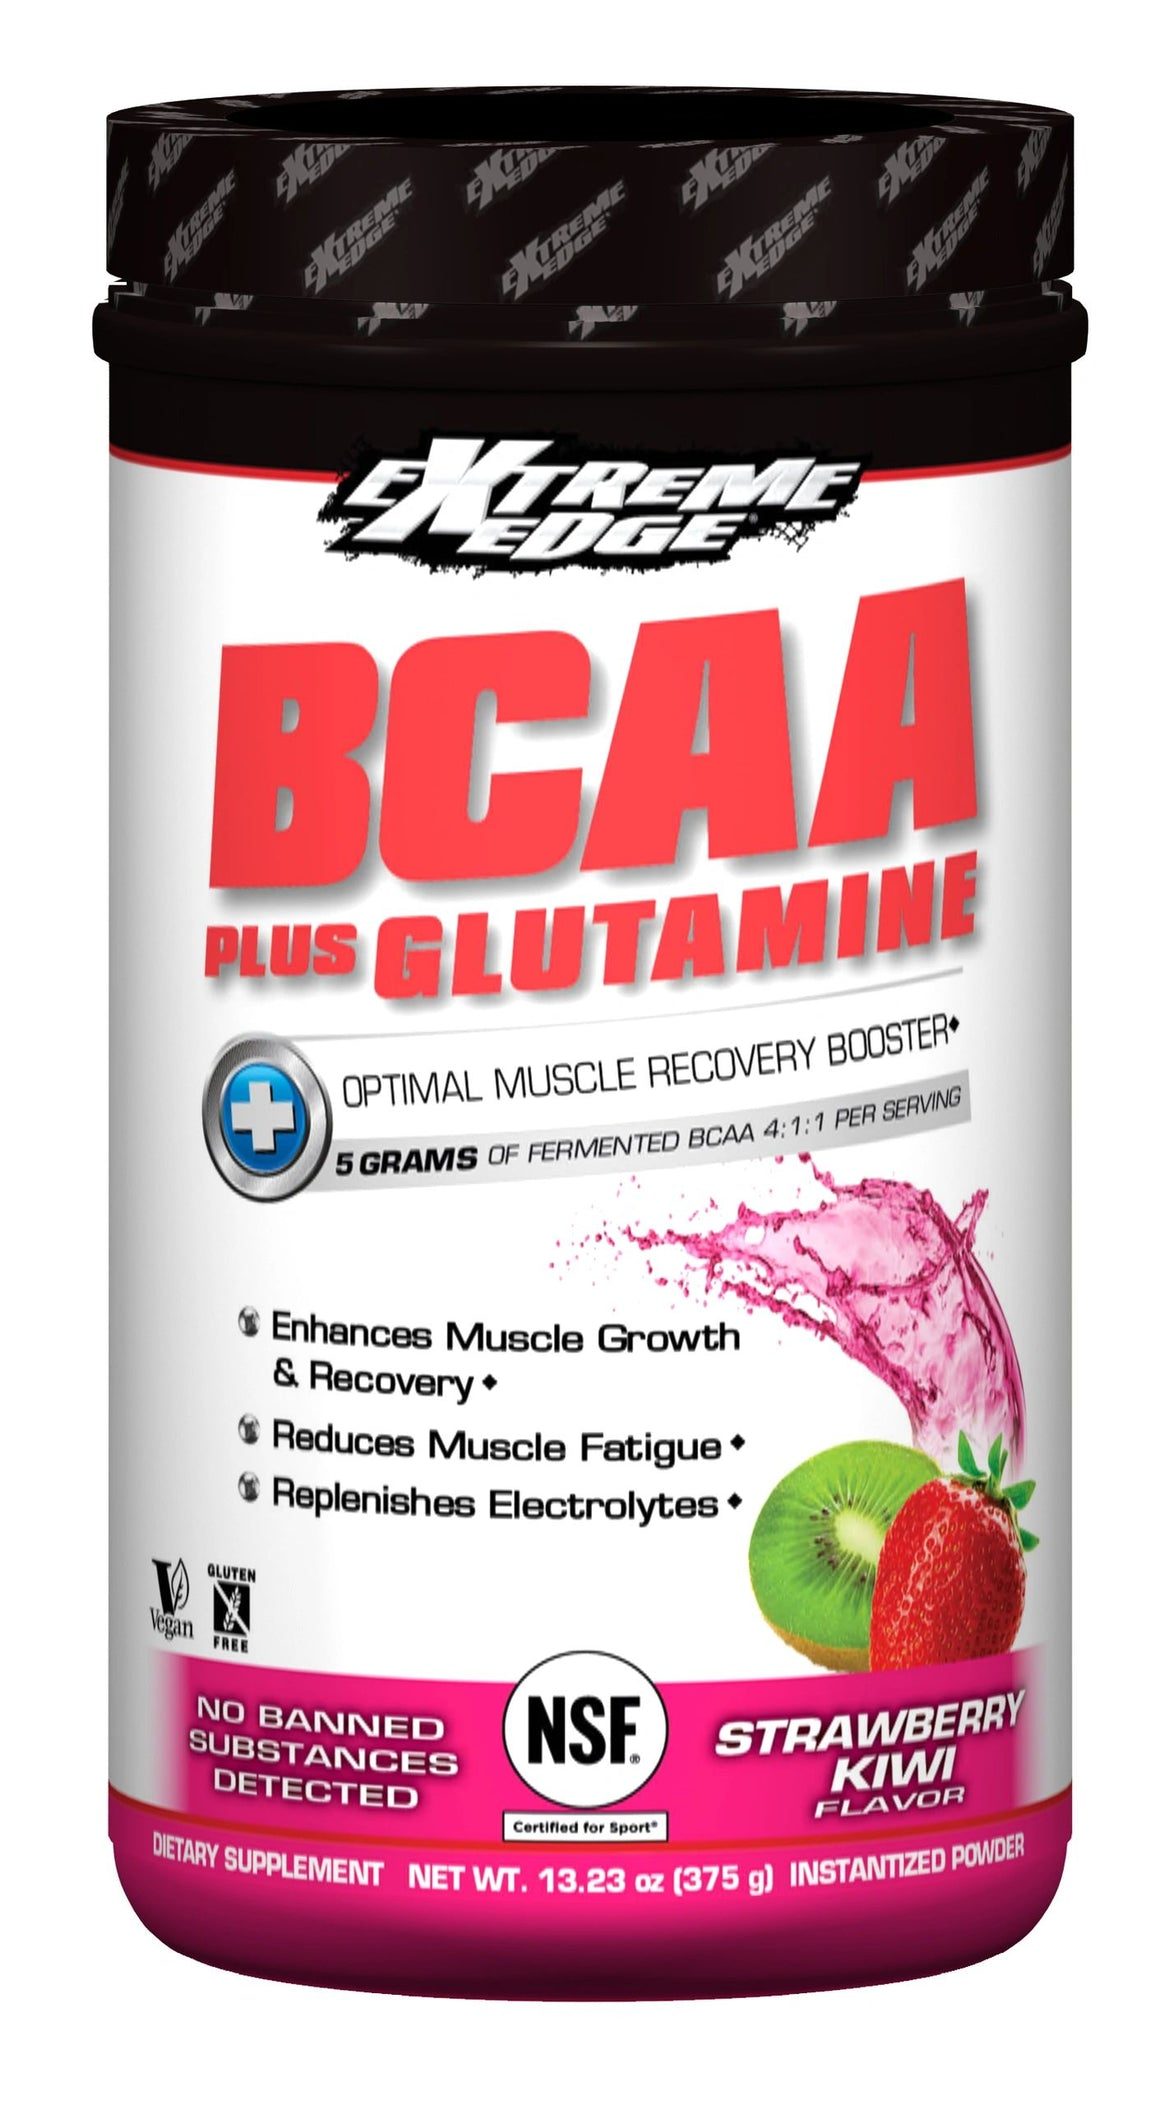 A jar of Bluebonnet Extreme Edge® BCAA plus Glutamine